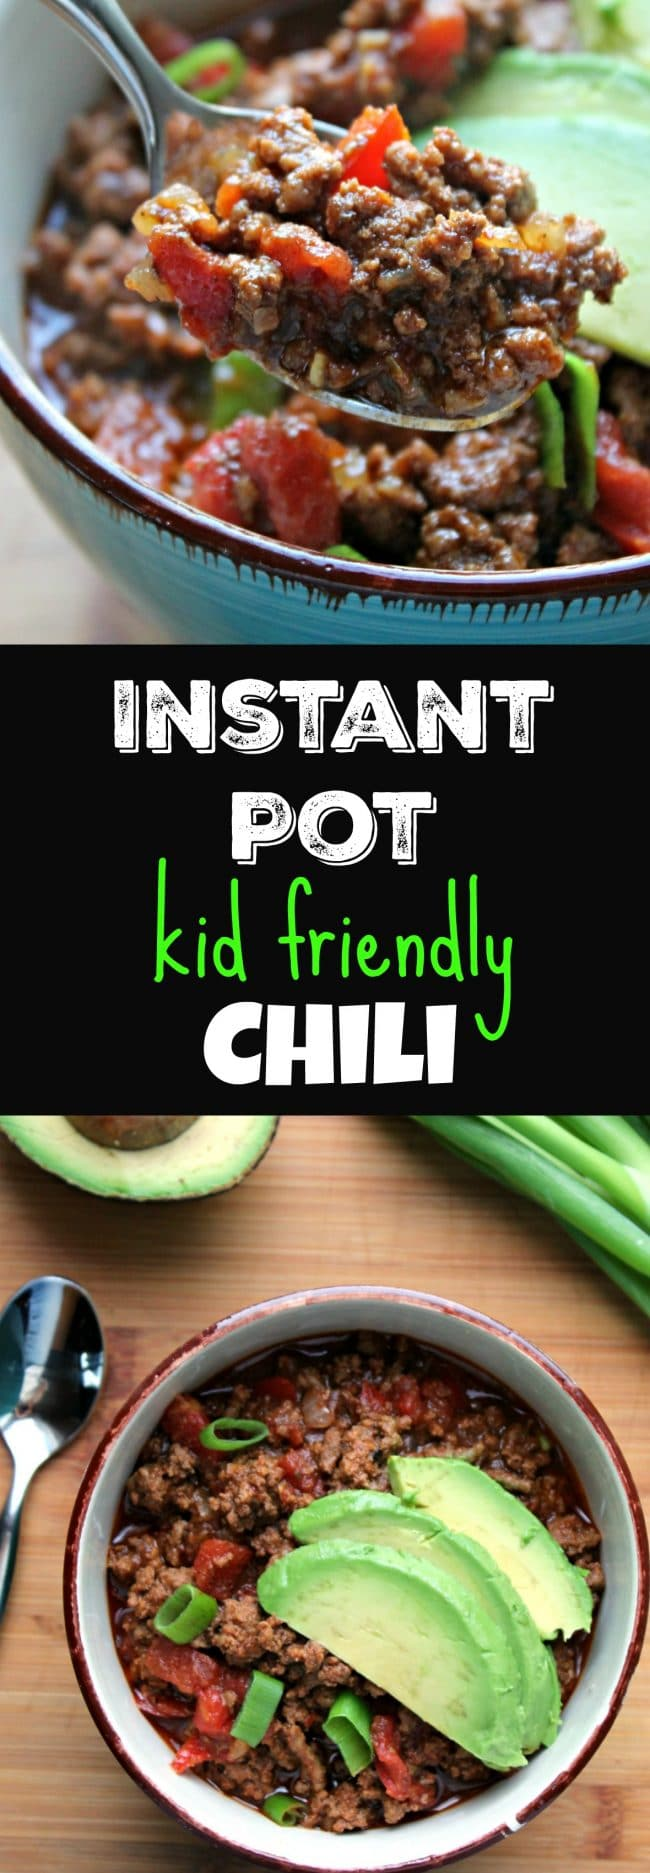 Instant Pot Kid Friendly Chili ready in under 30 minutes